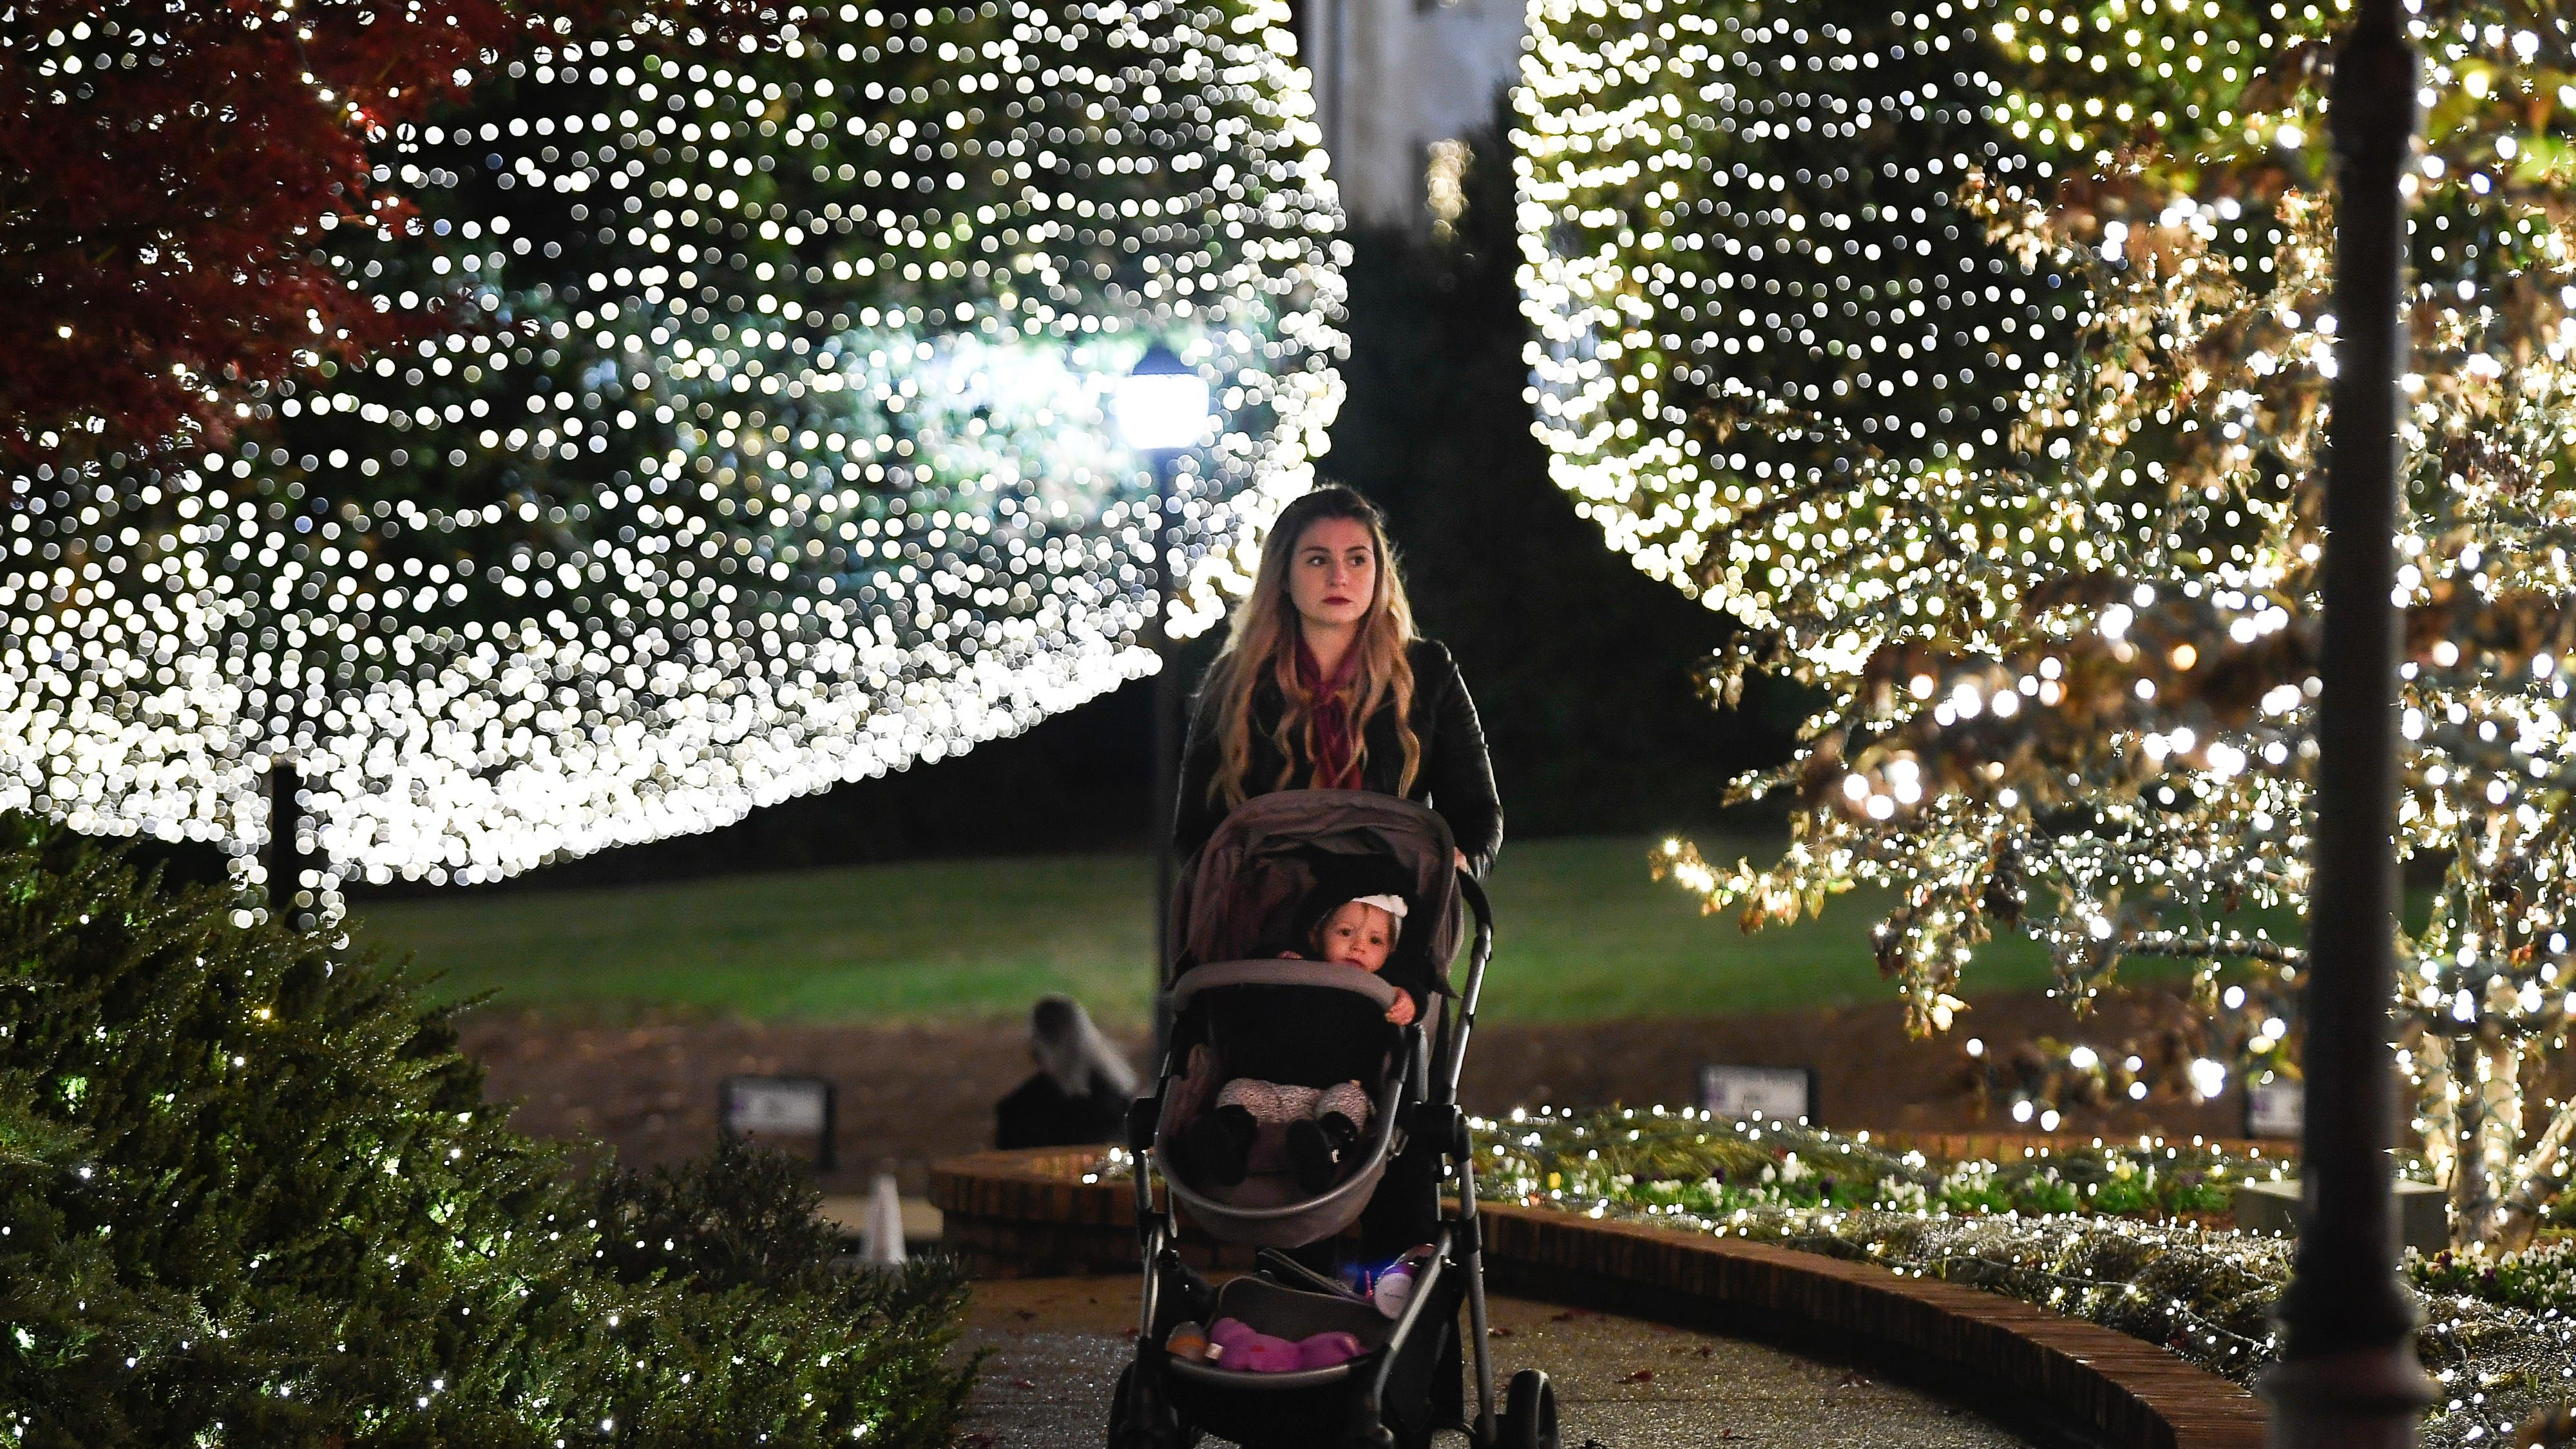 The Opryland hotel Christmas is a draw for Nashville